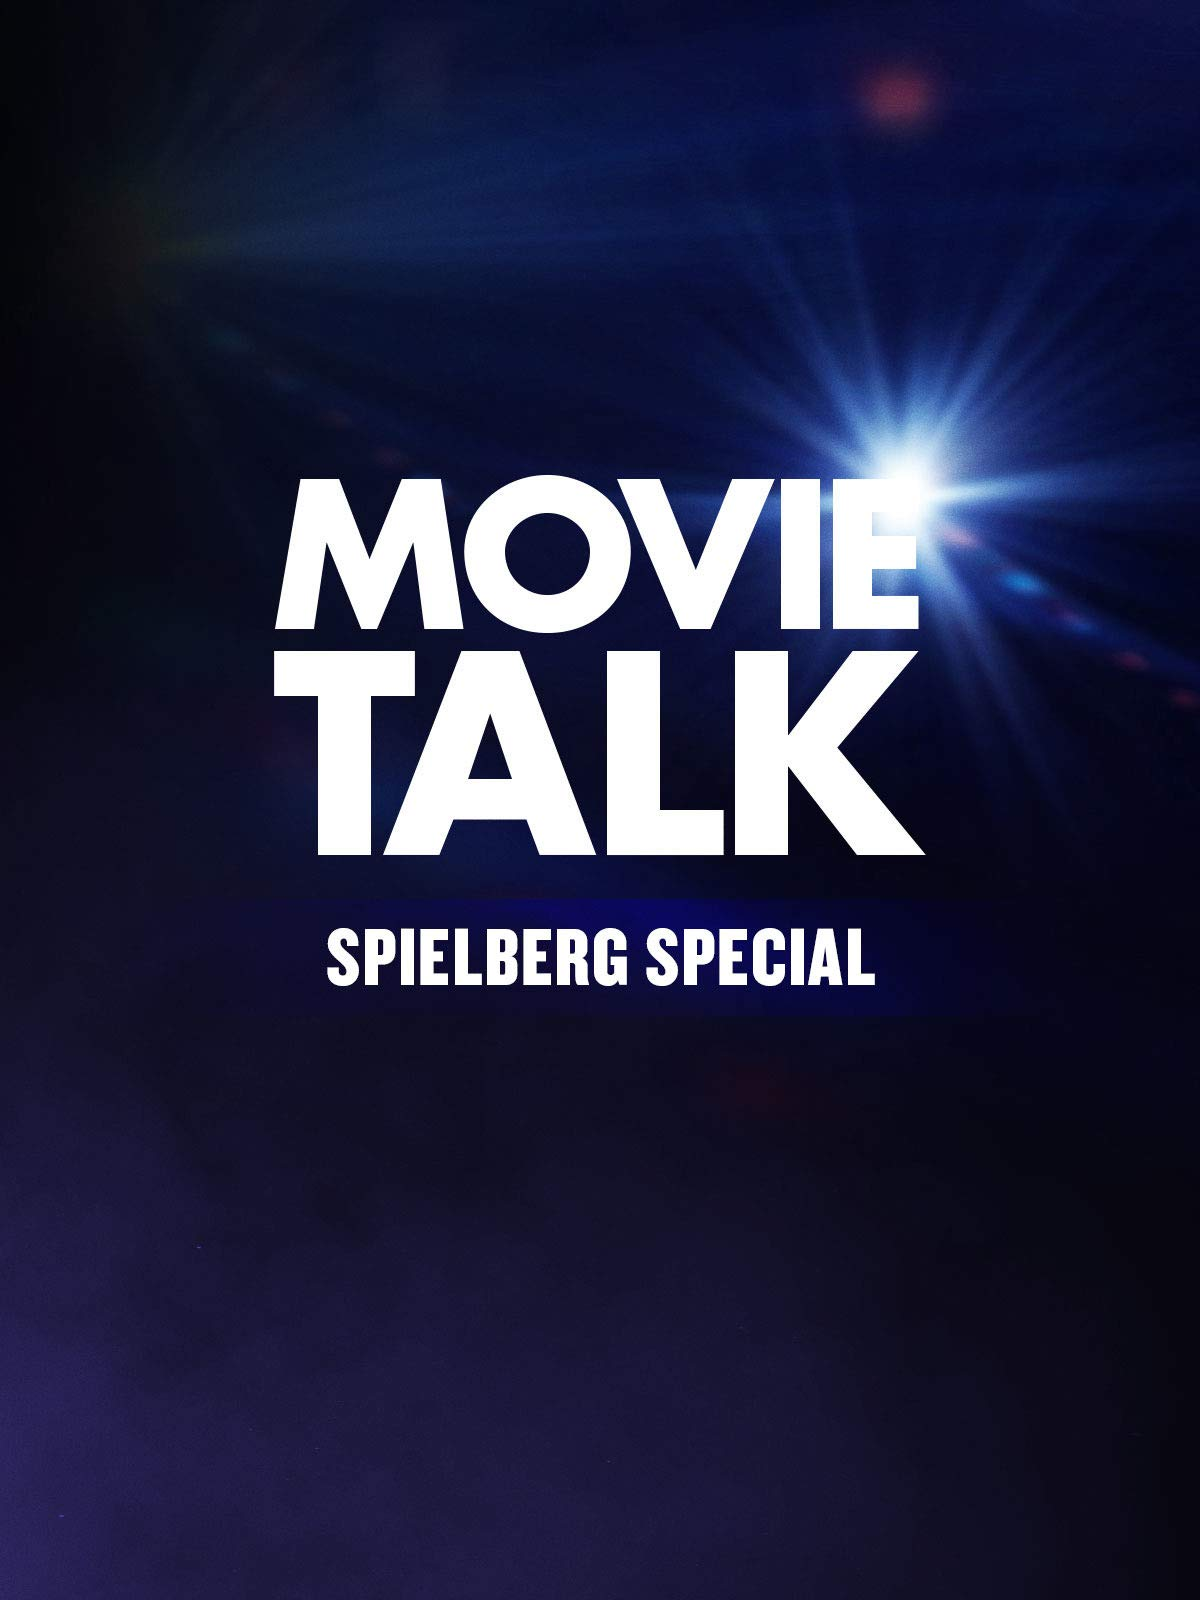 Spielberg Special - Movie Talk